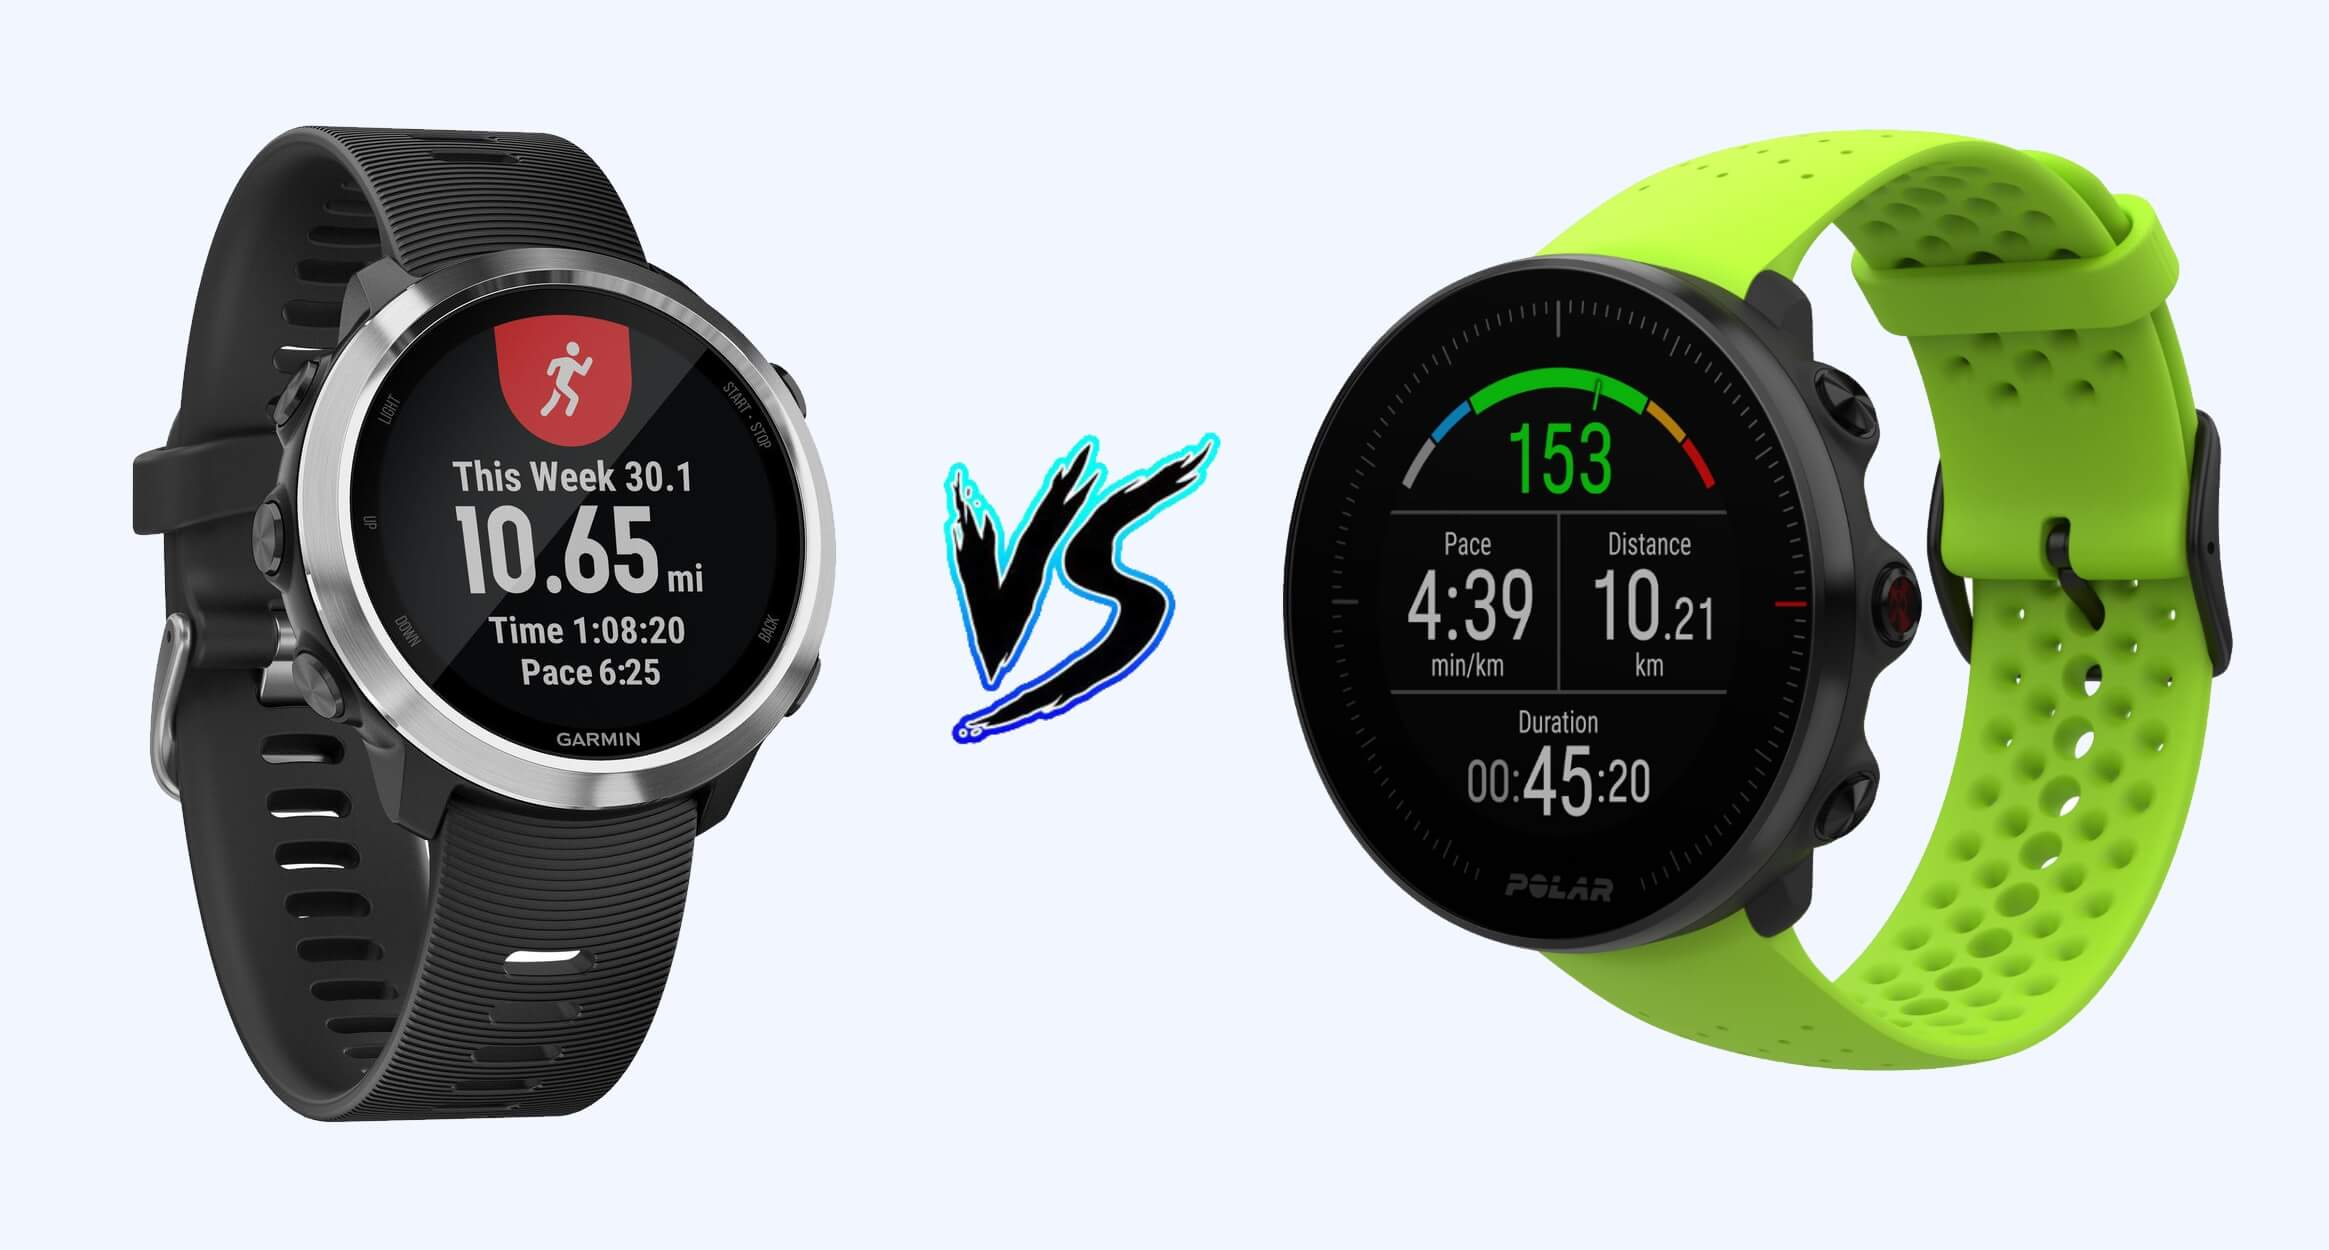 Garmin Forerunner 645 vs Polar Vantage M - Product Comparison